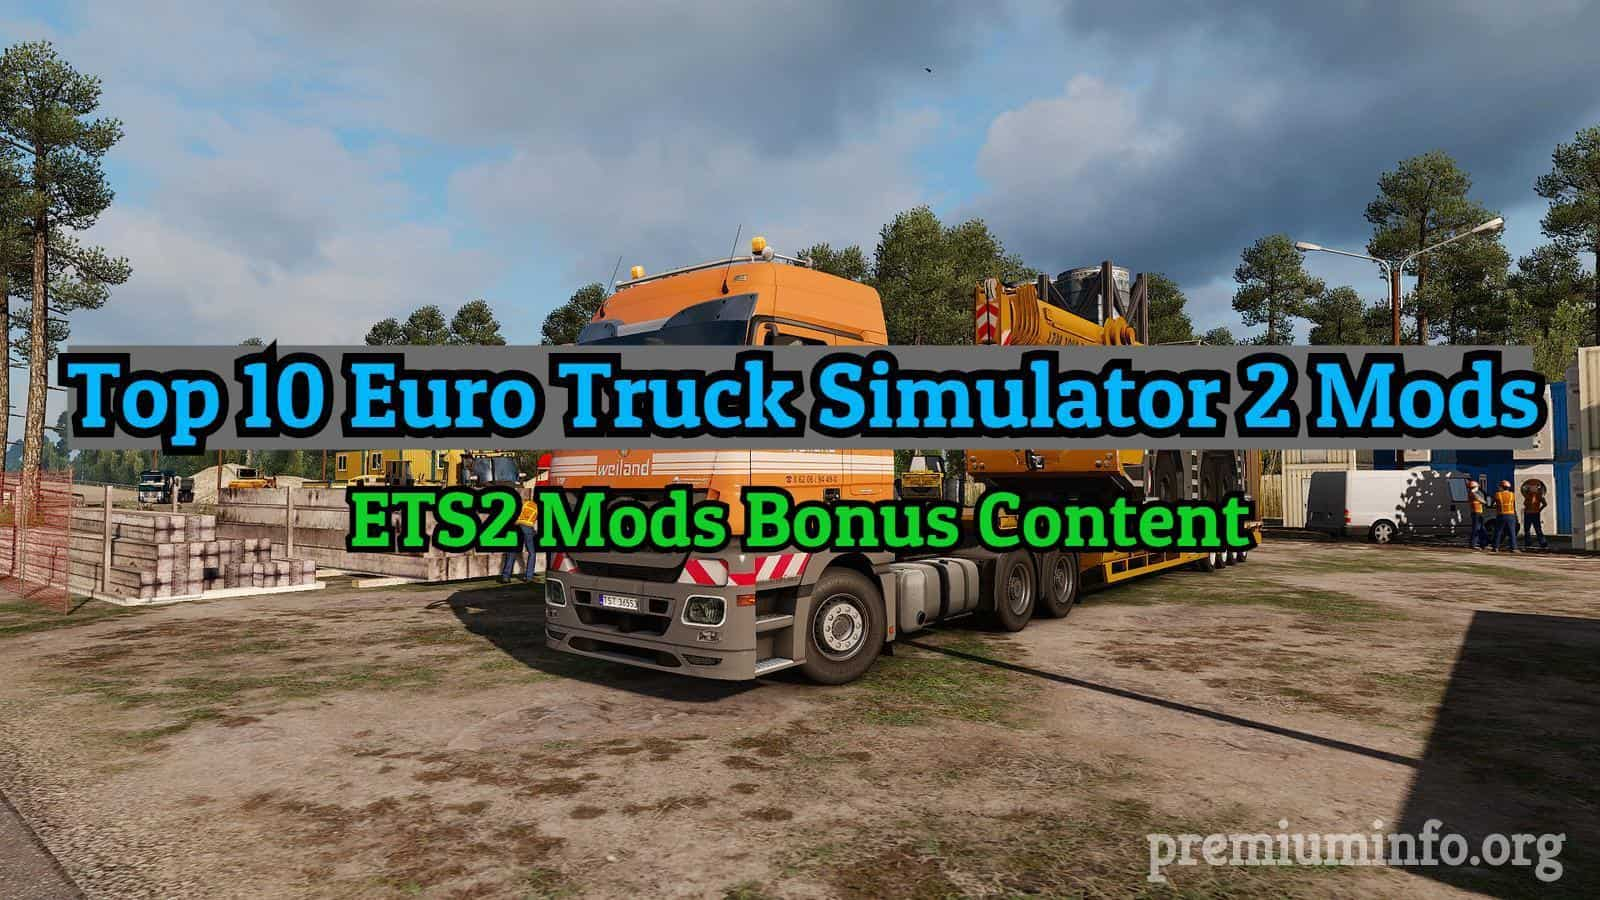 Top 10 Euro Truck Simulator 2 Mods in 2019 | Best ETS2 Mods